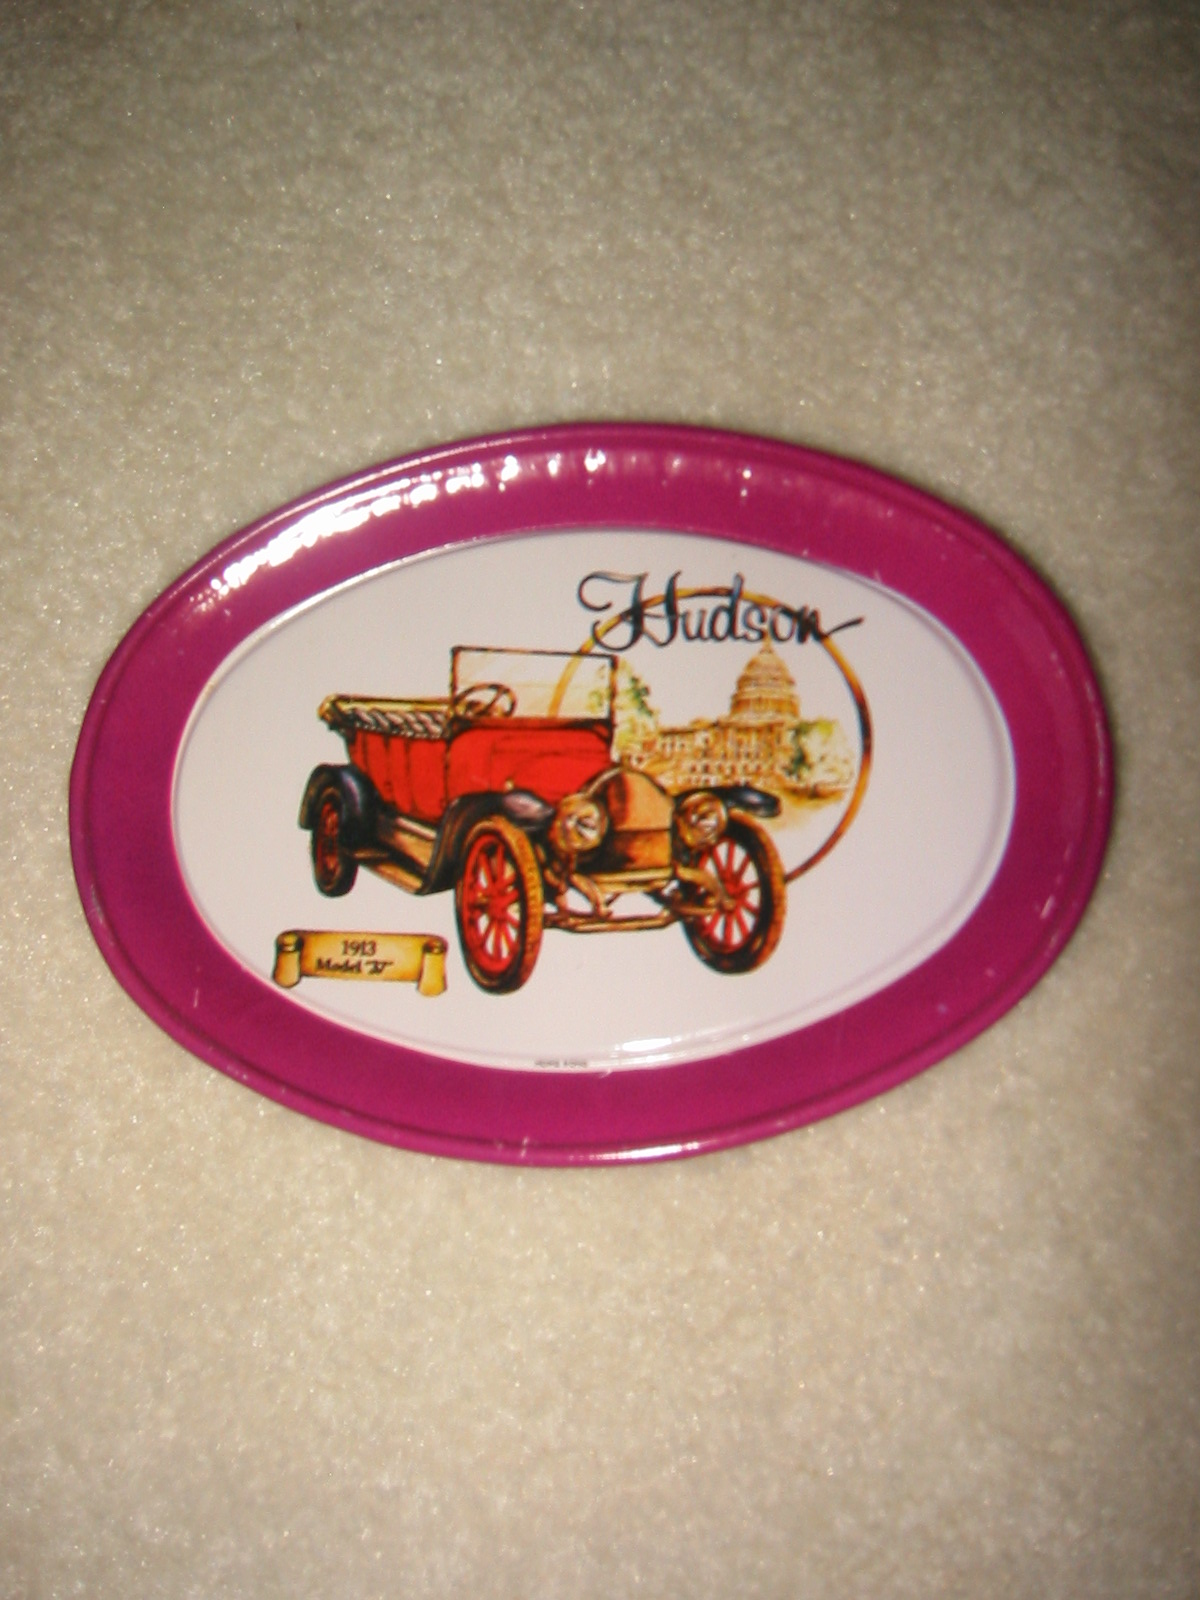 Hudson Tin Tip Tray